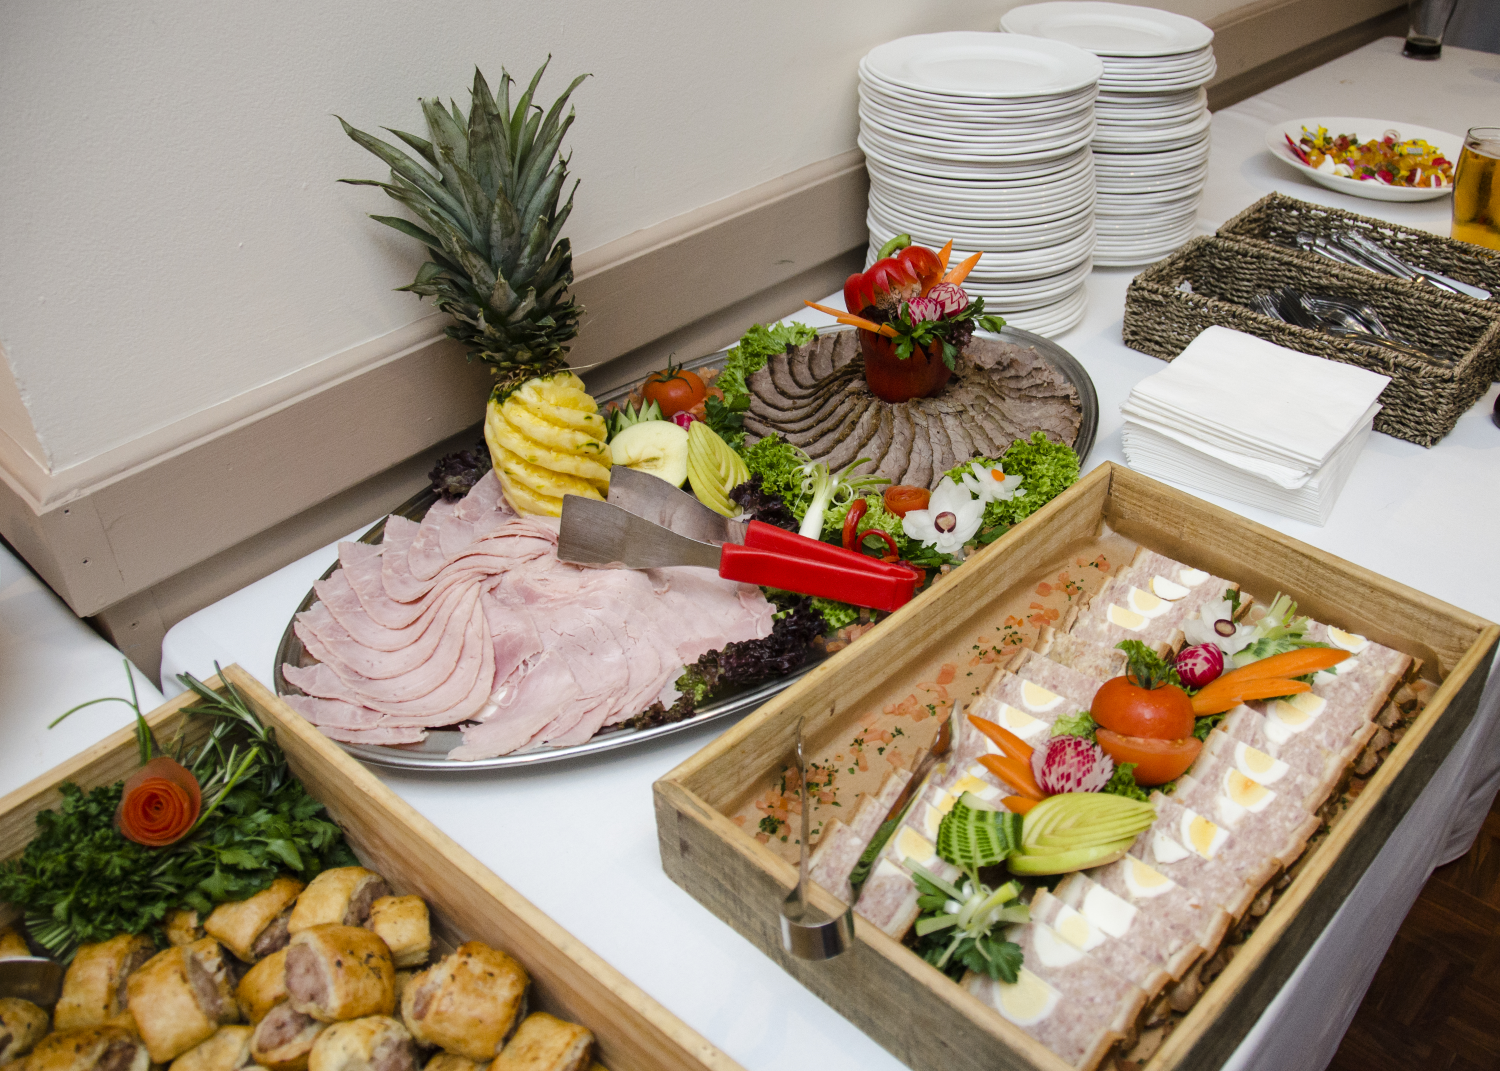 You want to make sure your guests have the best time at your wedding so by us providing delicious food will bring smiles on their faces! This is just one of the many things we can do. Visit our website to find out more www.theoldrectoryweddingvenue.co.uk -Wedding venue Brentwood